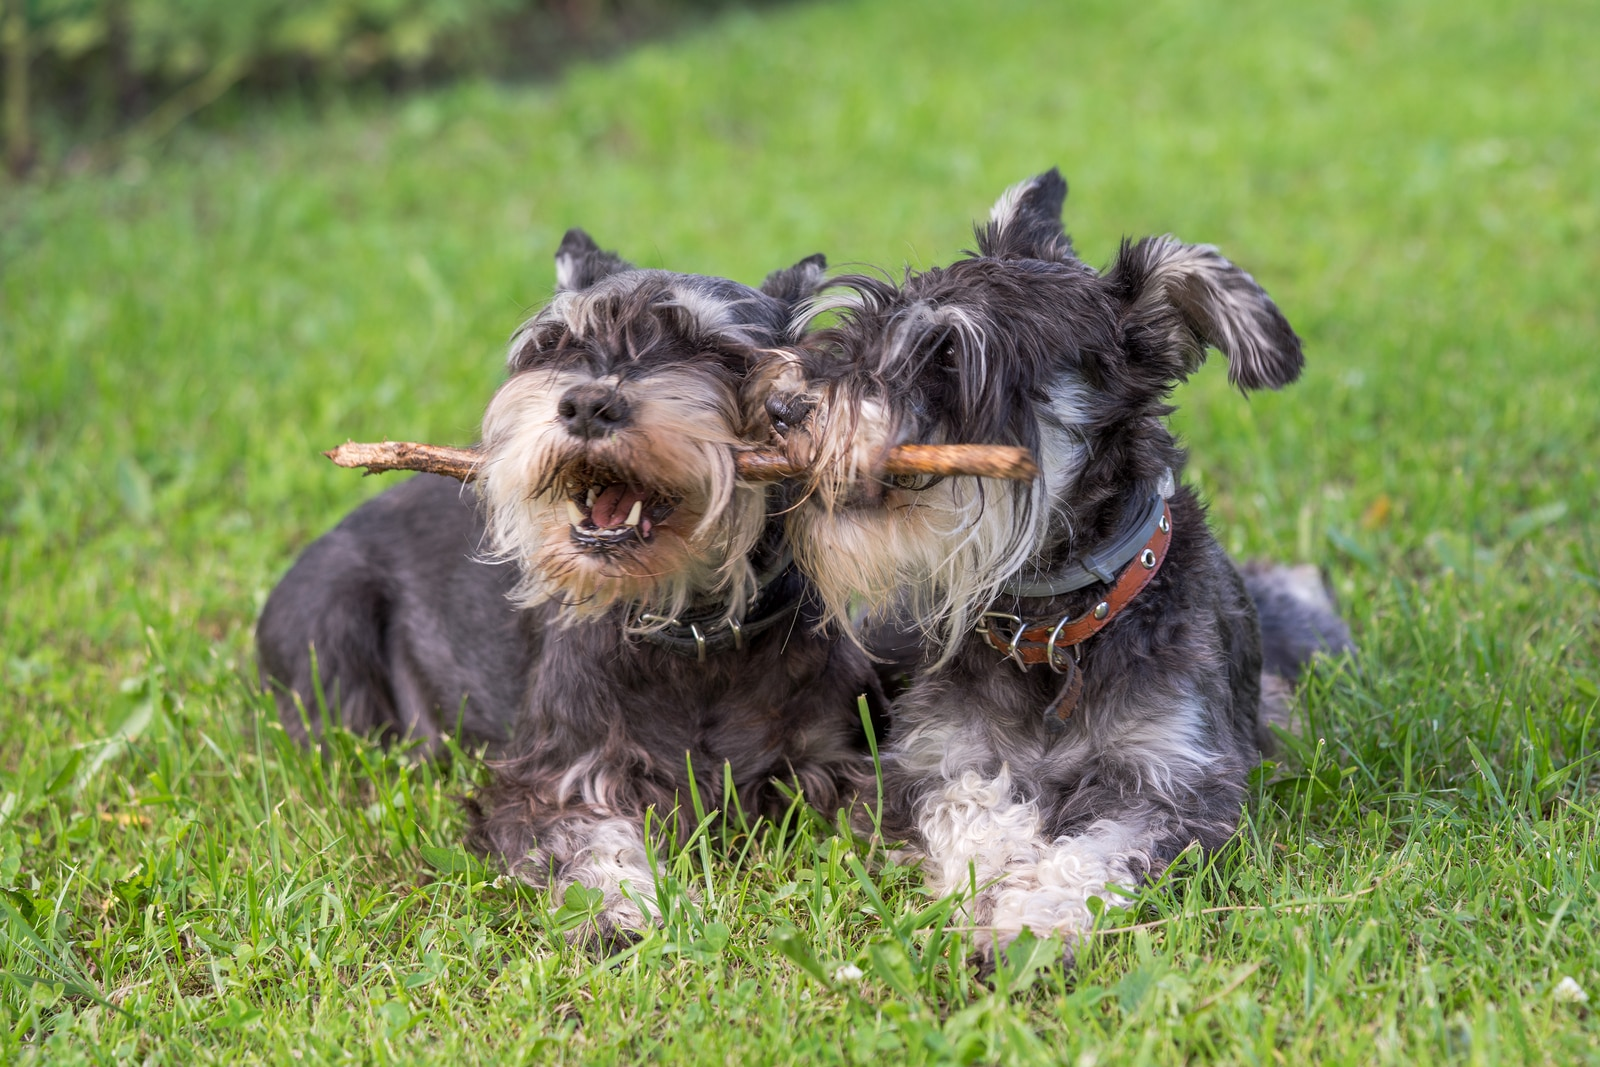 Two black and silver miniature schnauzer dogs chewing on the same stick.